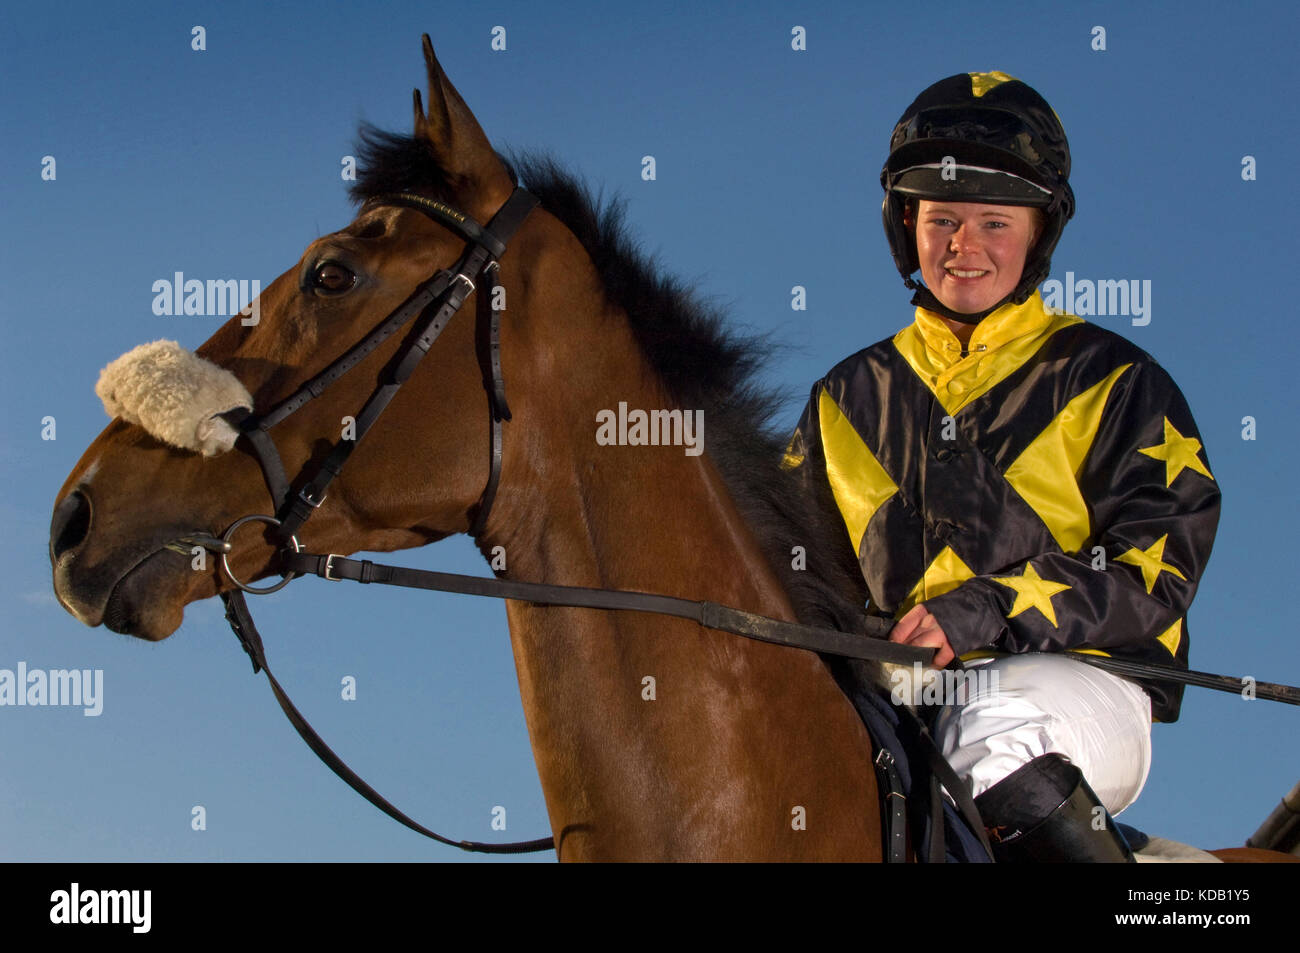 Jockey Jess Westwood with her horse 'Monkerty Tunkerty'. - Stock Image